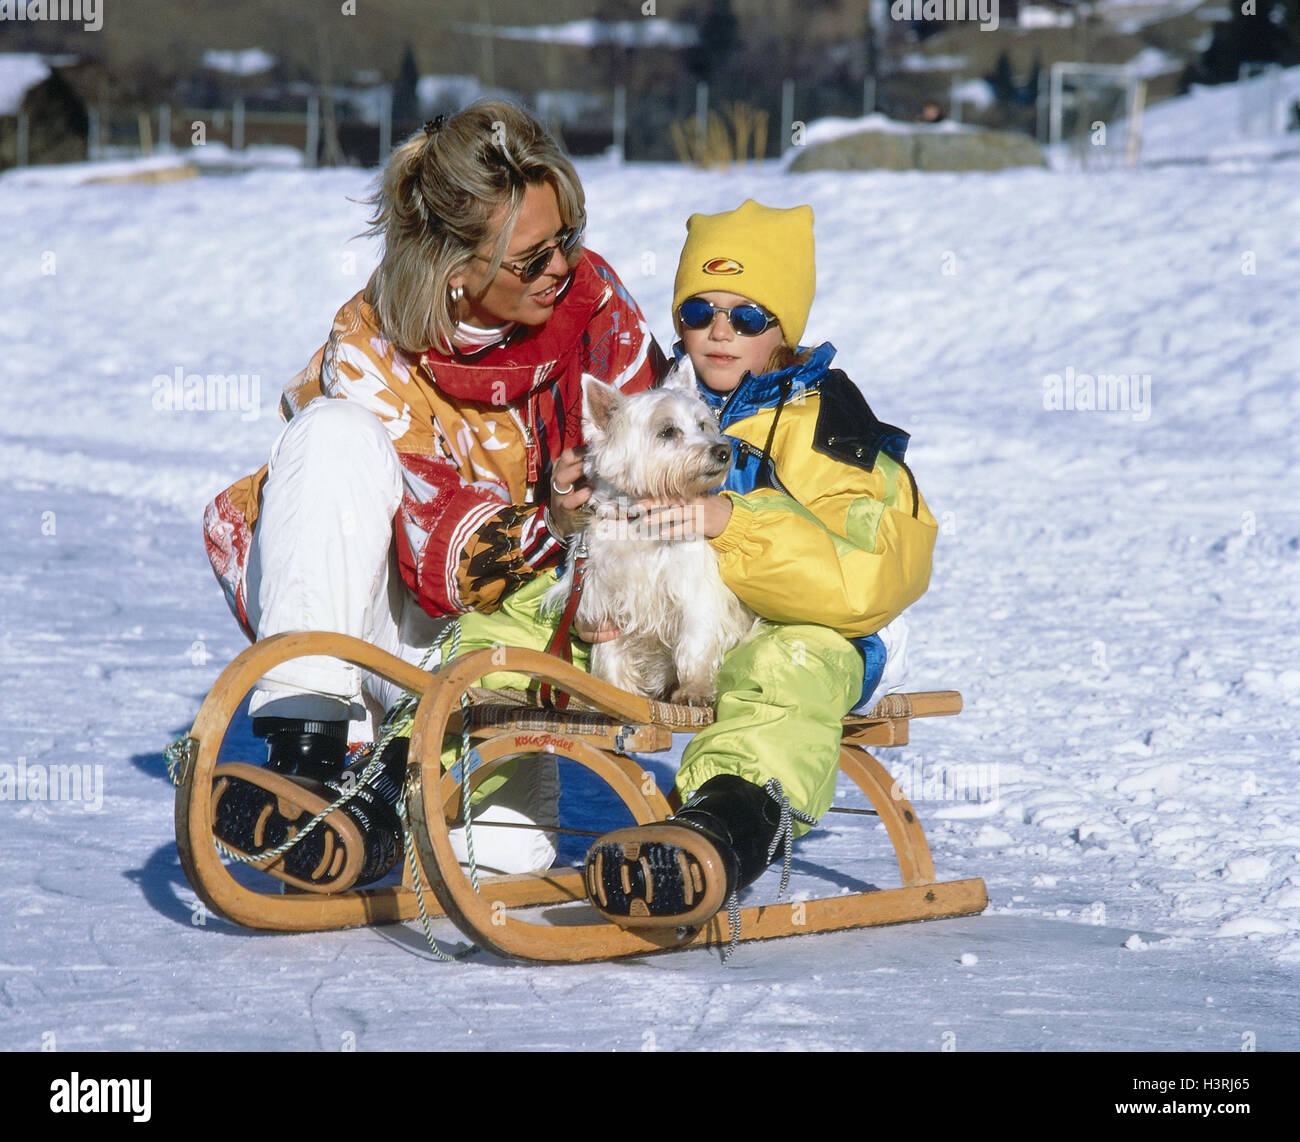 Winters Woman Child Dog Sleigh Riding Winter Vacation Snow Slide Sledge Toboggan Leisure Time Hobby Parent Single